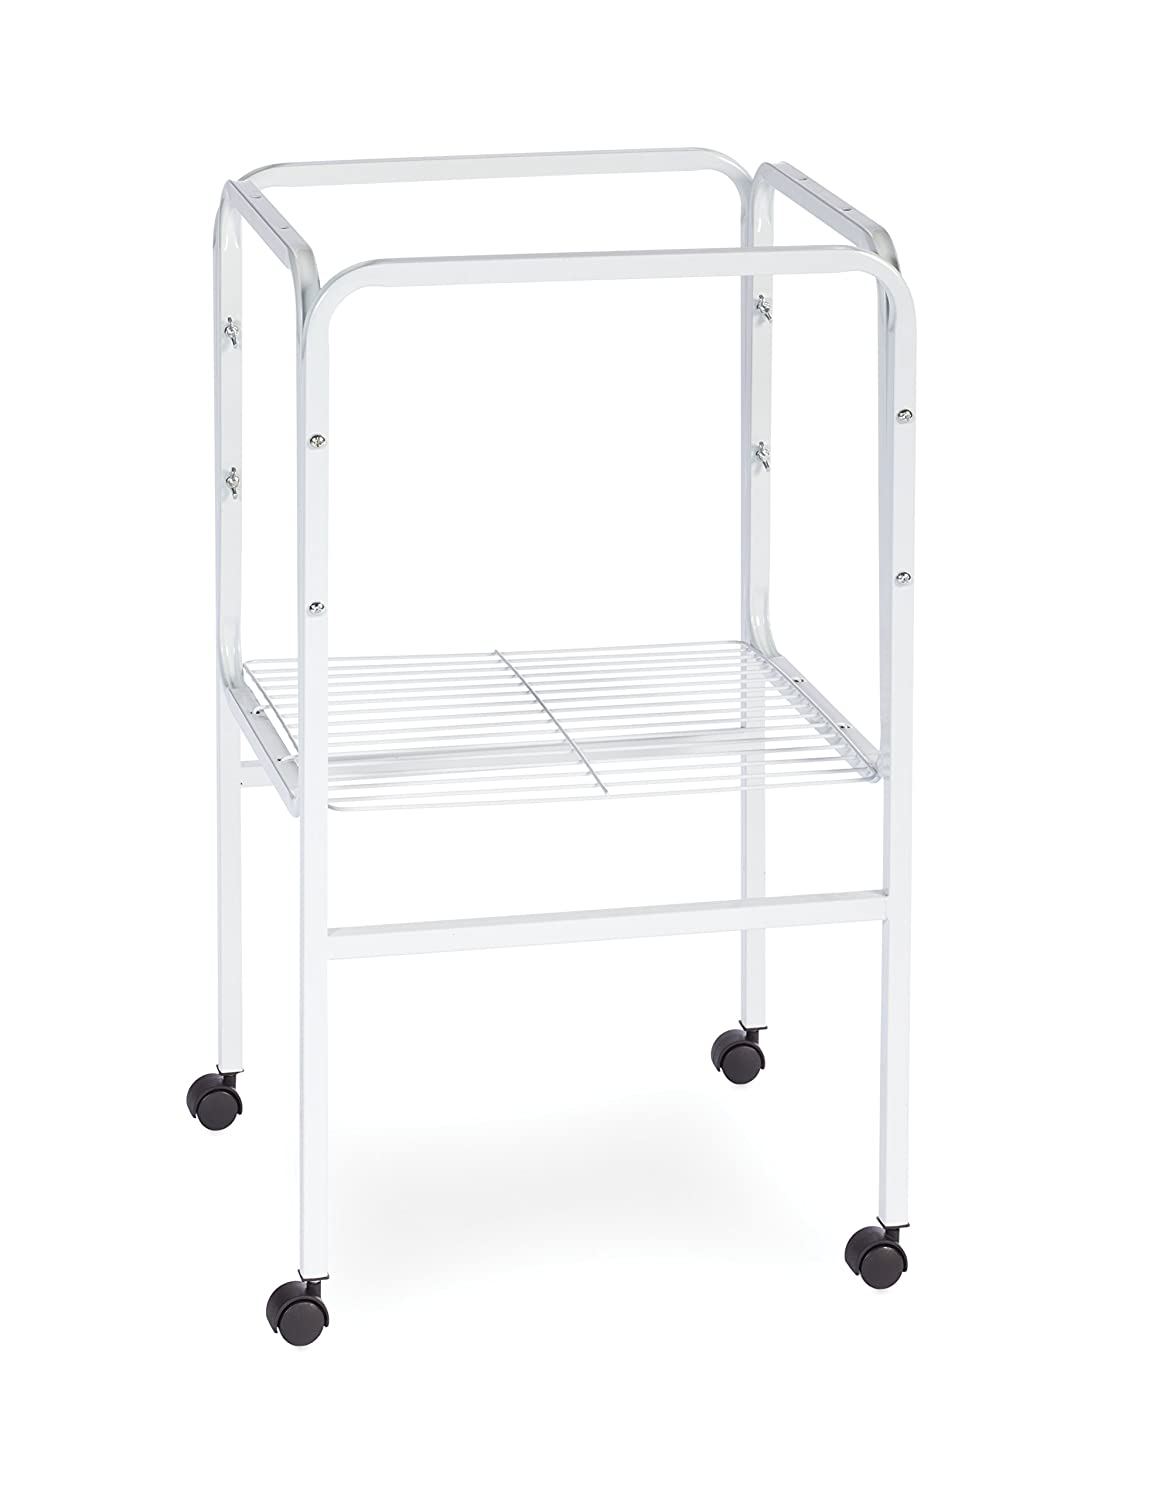 Prevue Pet Products SP445W Bird Cage Stand with Shelf, White Inc.